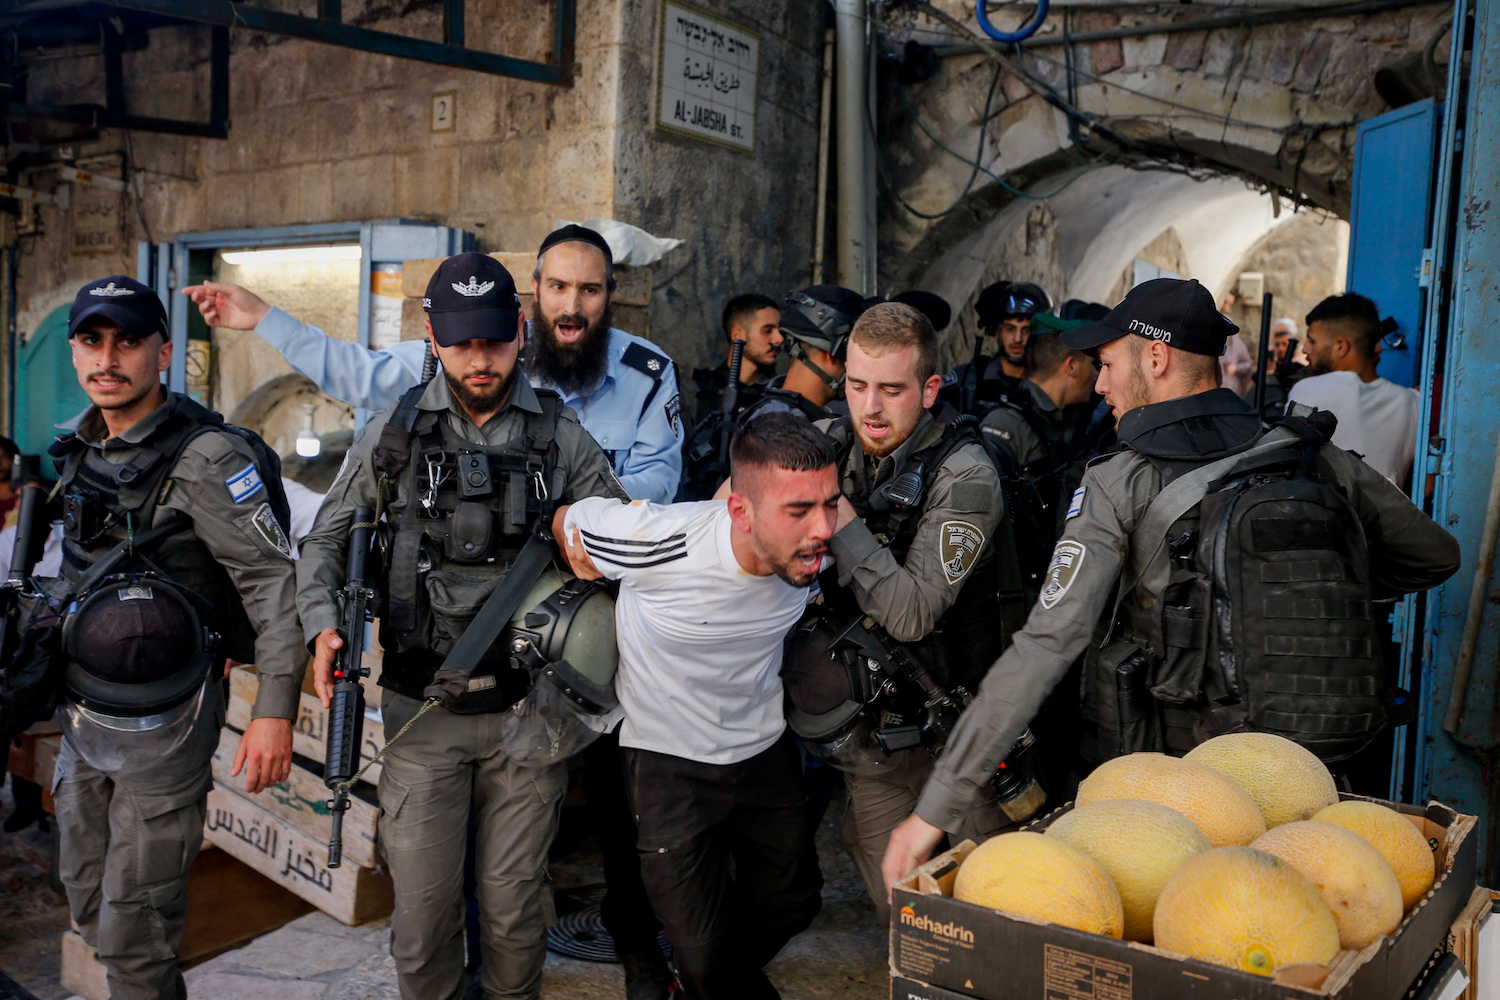 Israeli police officers arrest a Palestinian man during protests in Jerusalem's Old City, May 18, 2021. (Jamal Awad/Flash90)